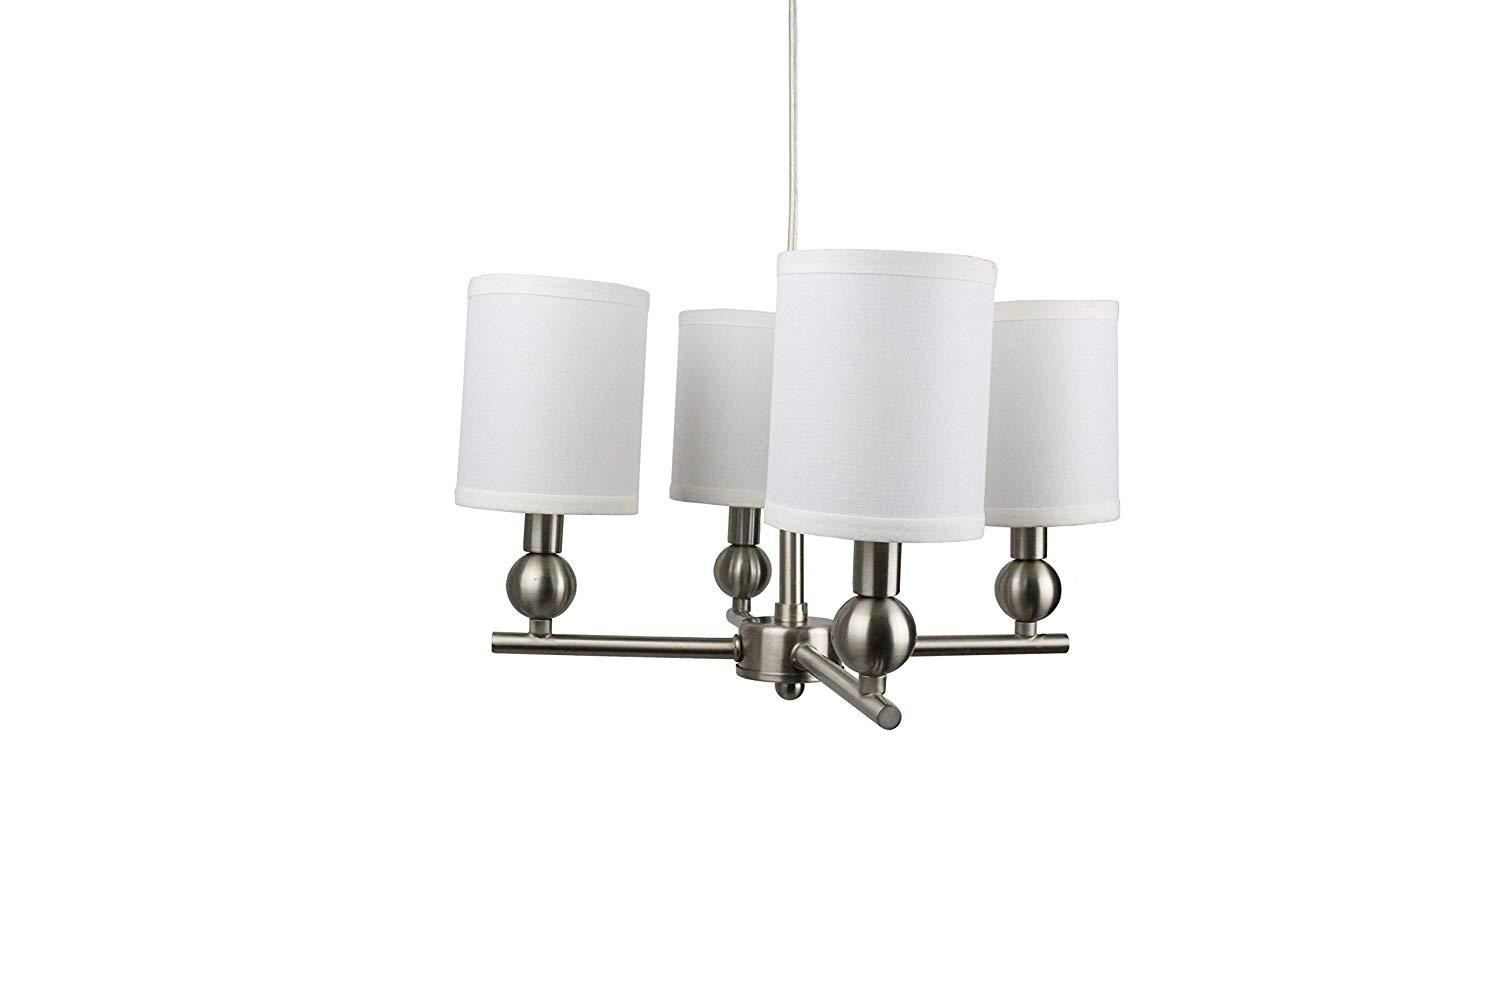 Portable Zio 4-Light Chandelier with Off White Linen Shades